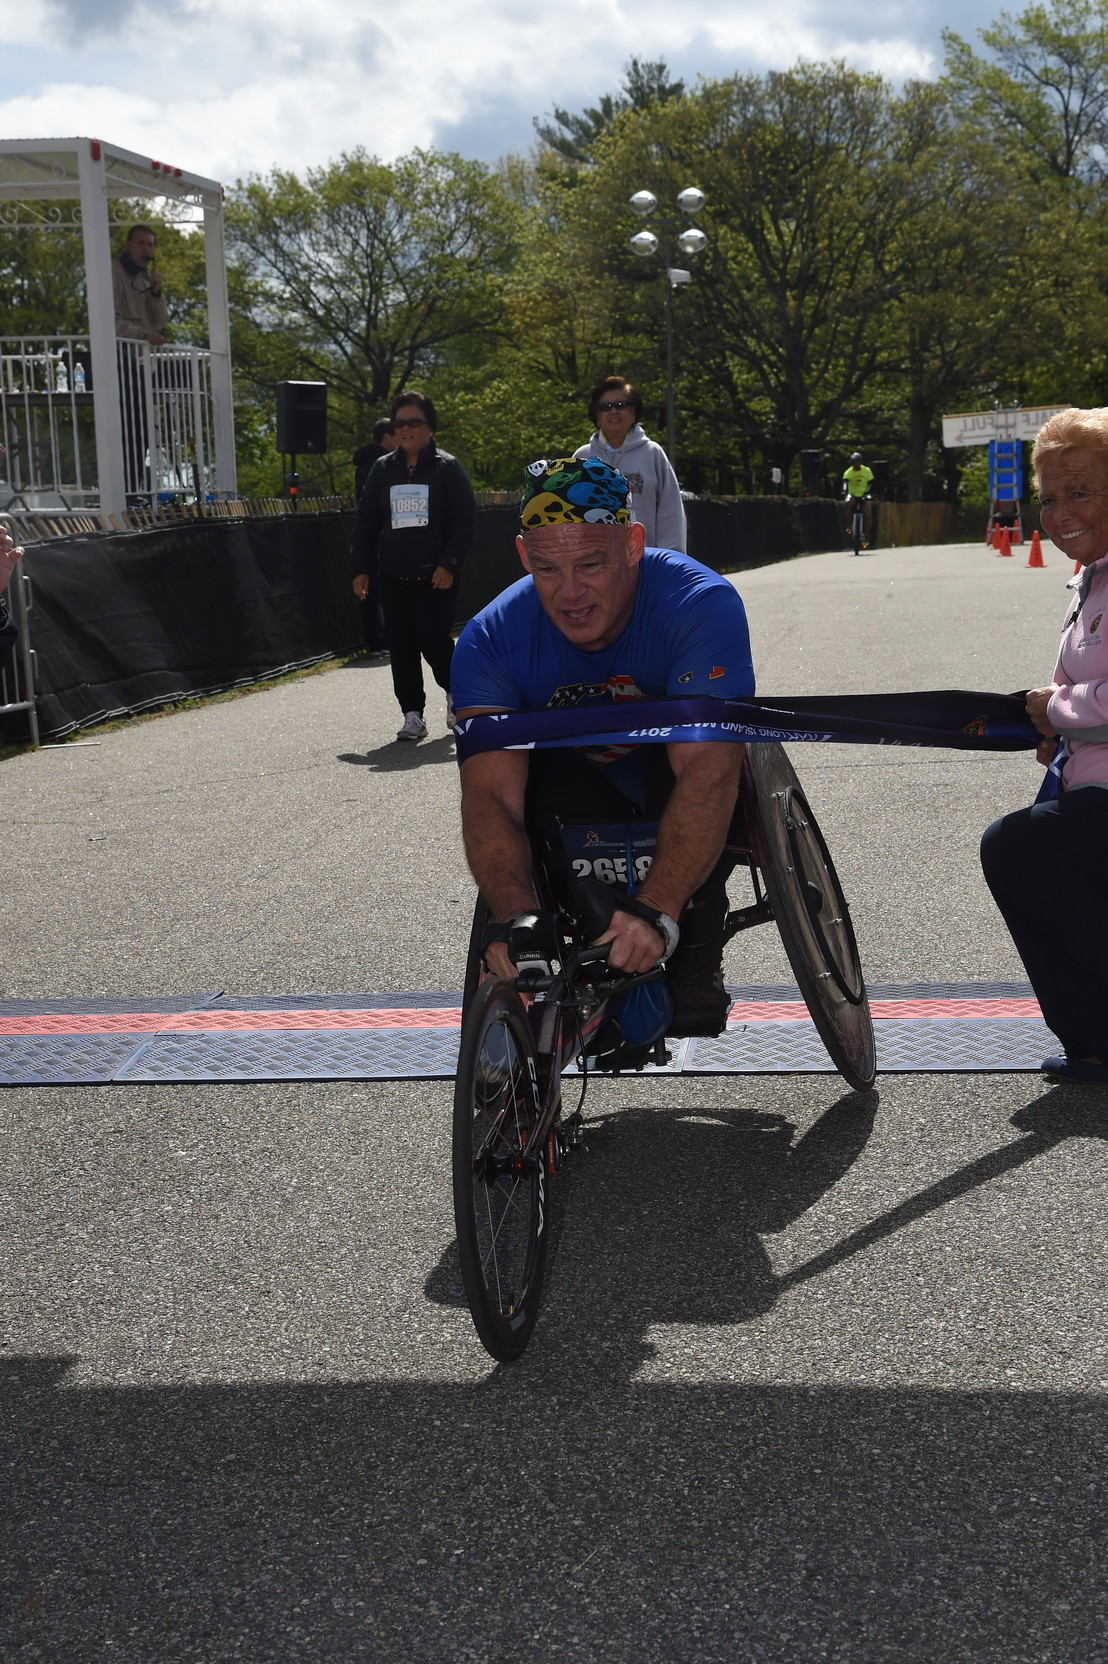 Peter Hawkins, who also won last year's Long Island Marathon, said that he plans to compete as long as he can.